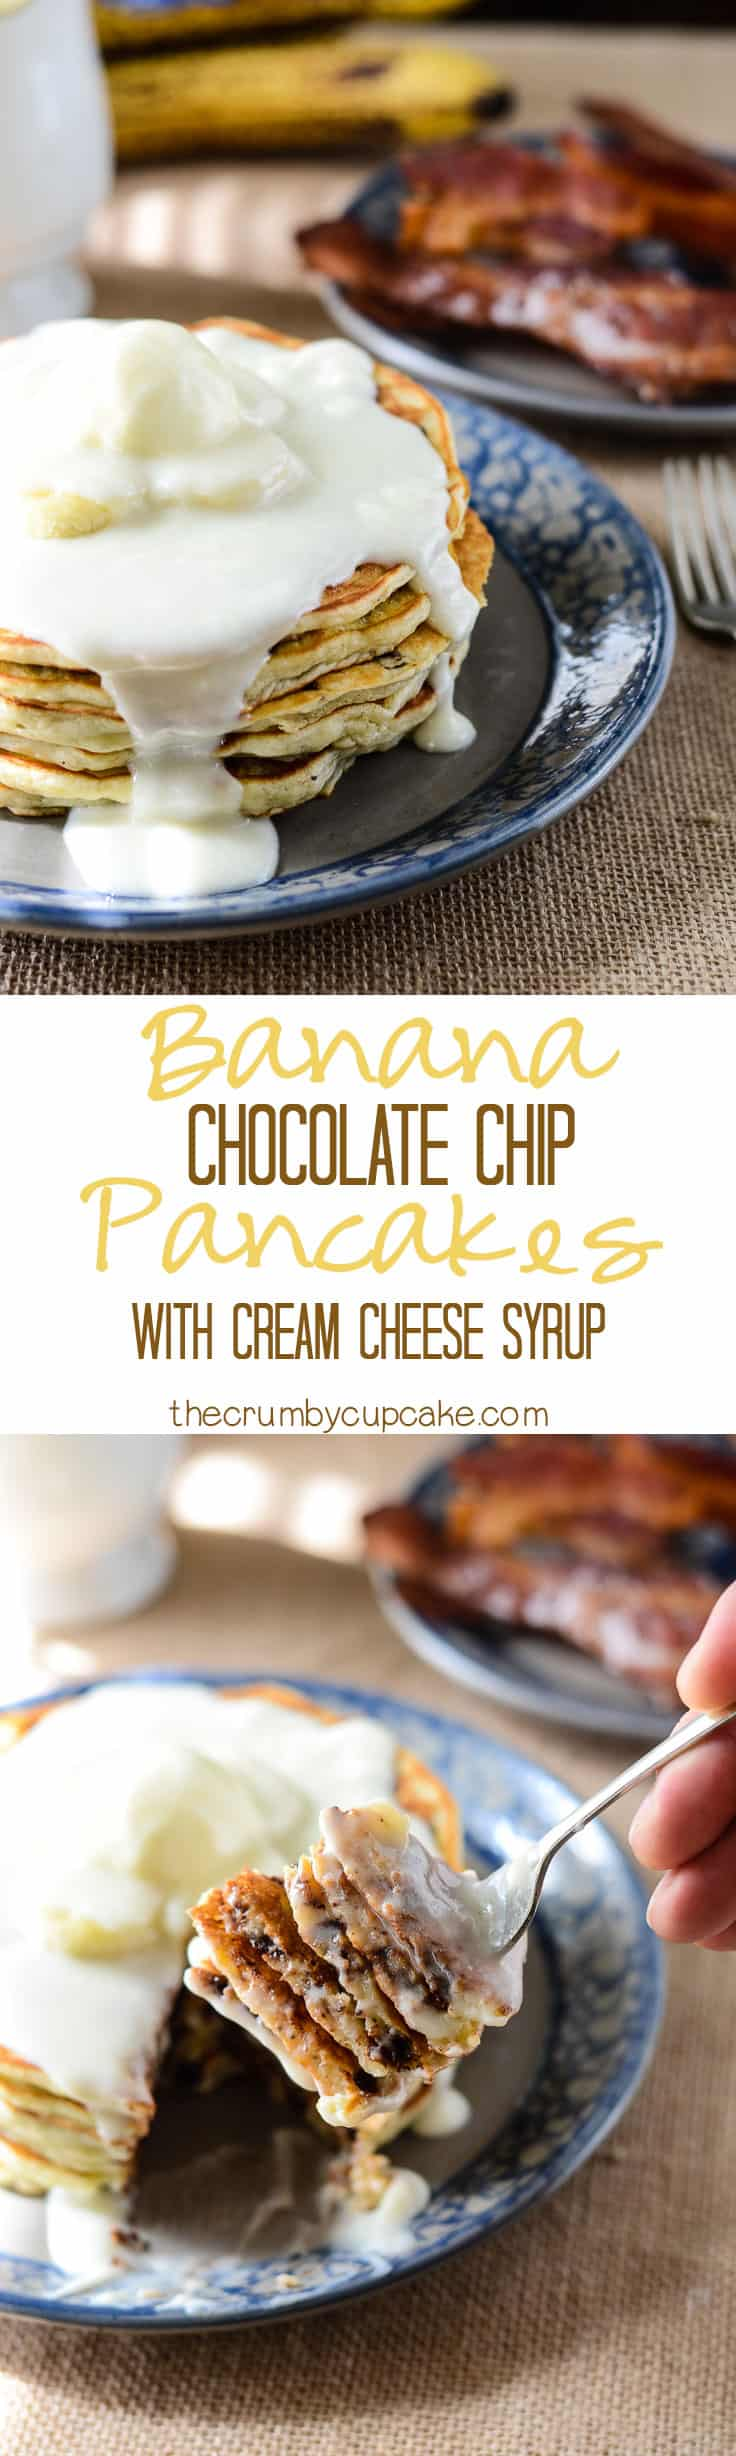 Banana Chocolate Chip Pancakes: perfectly light and fluffy banana pancakes, studded with handfuls of chocolate chips, and topped with an ooey-gooey cream cheese